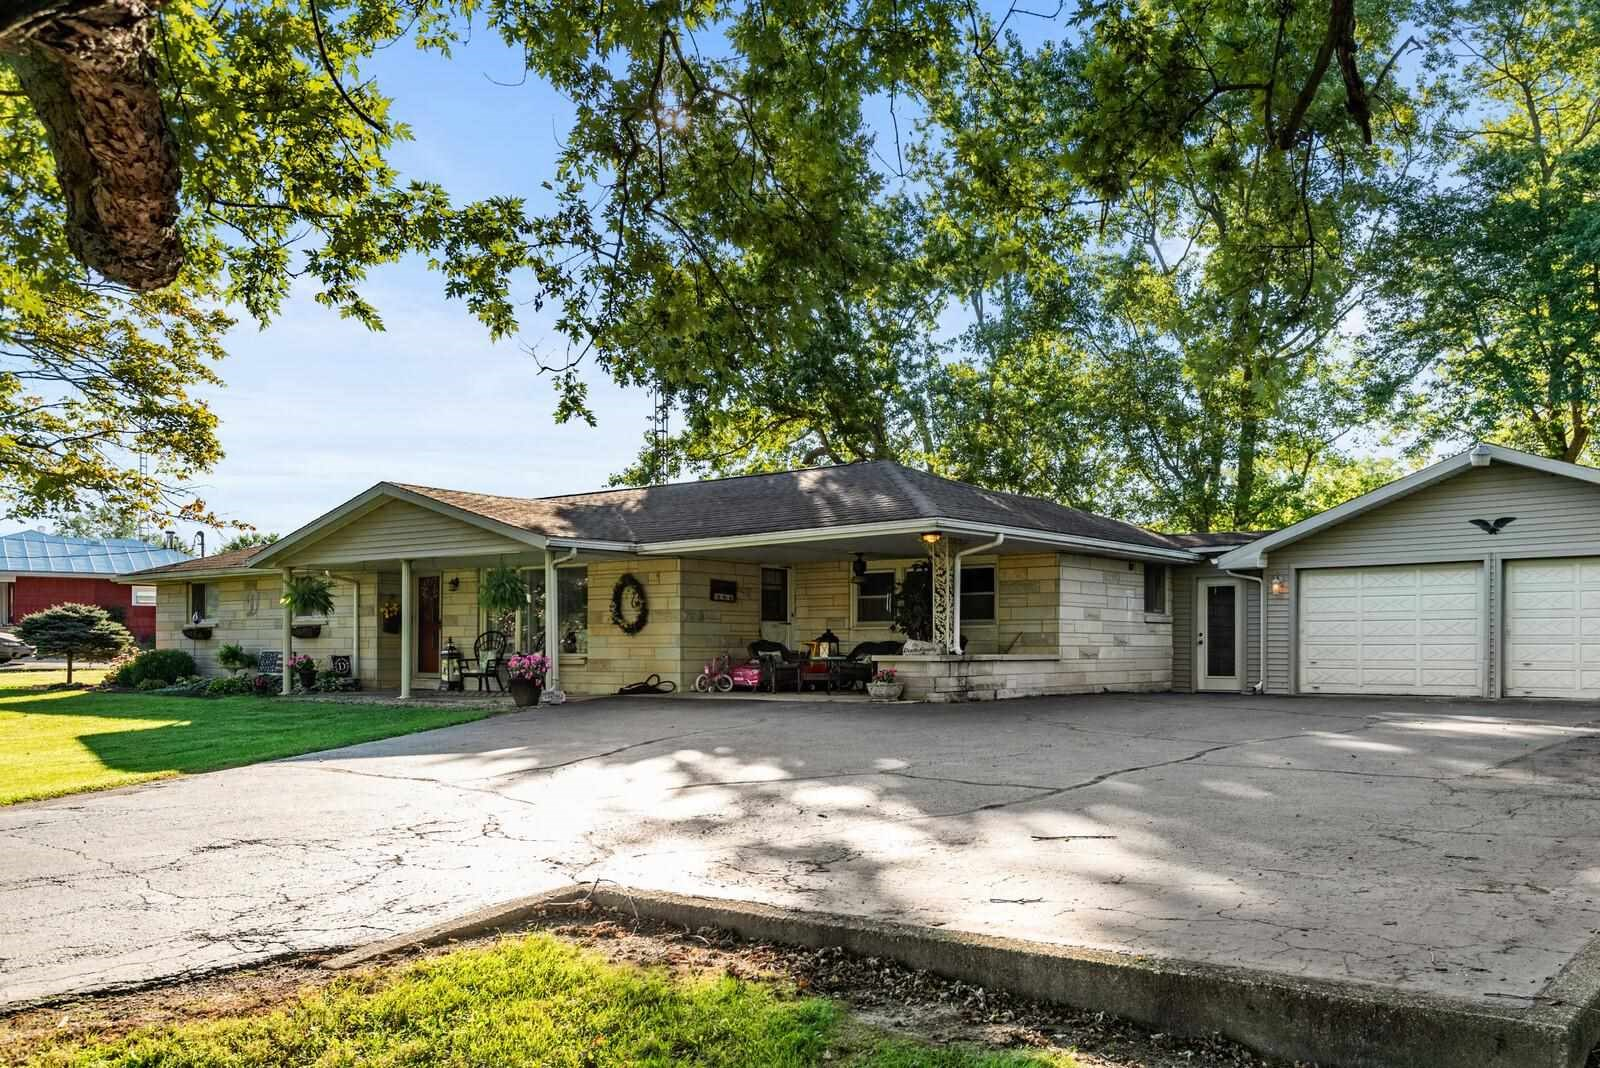 Home for Sale Modoc, Indiana